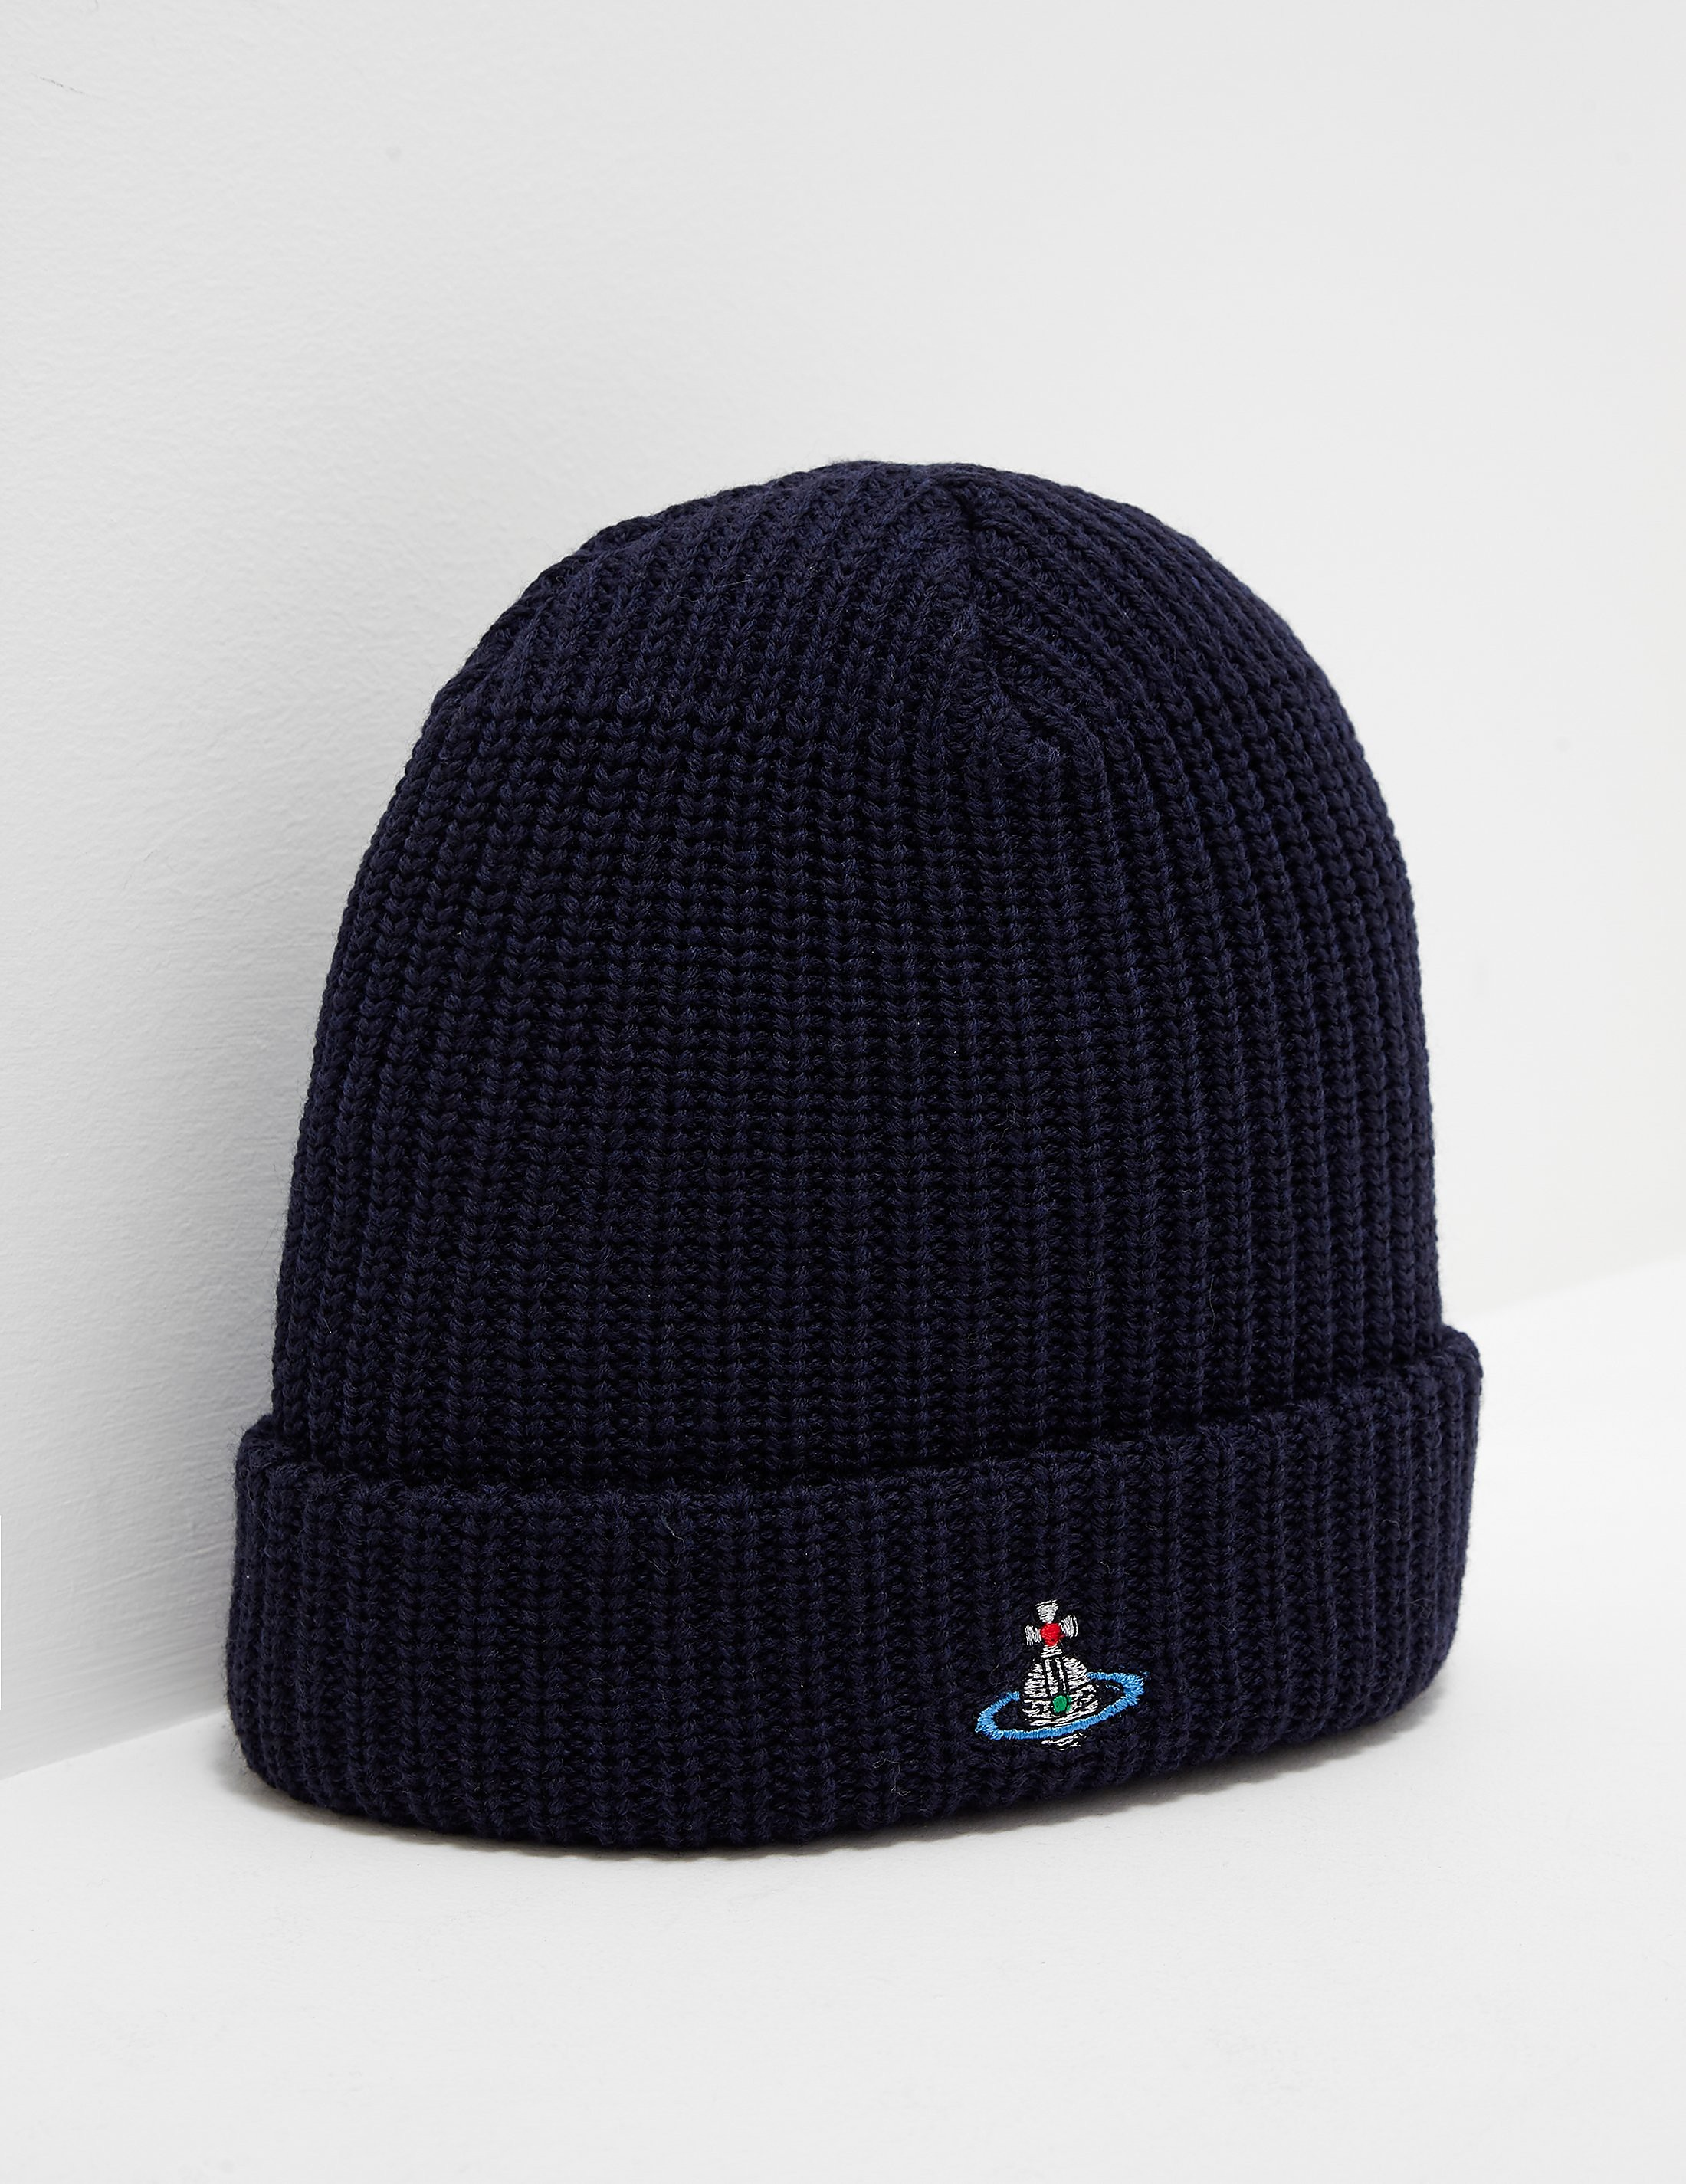 Vivienne Westwood Orb Knitted Beanie - Online Exclusive